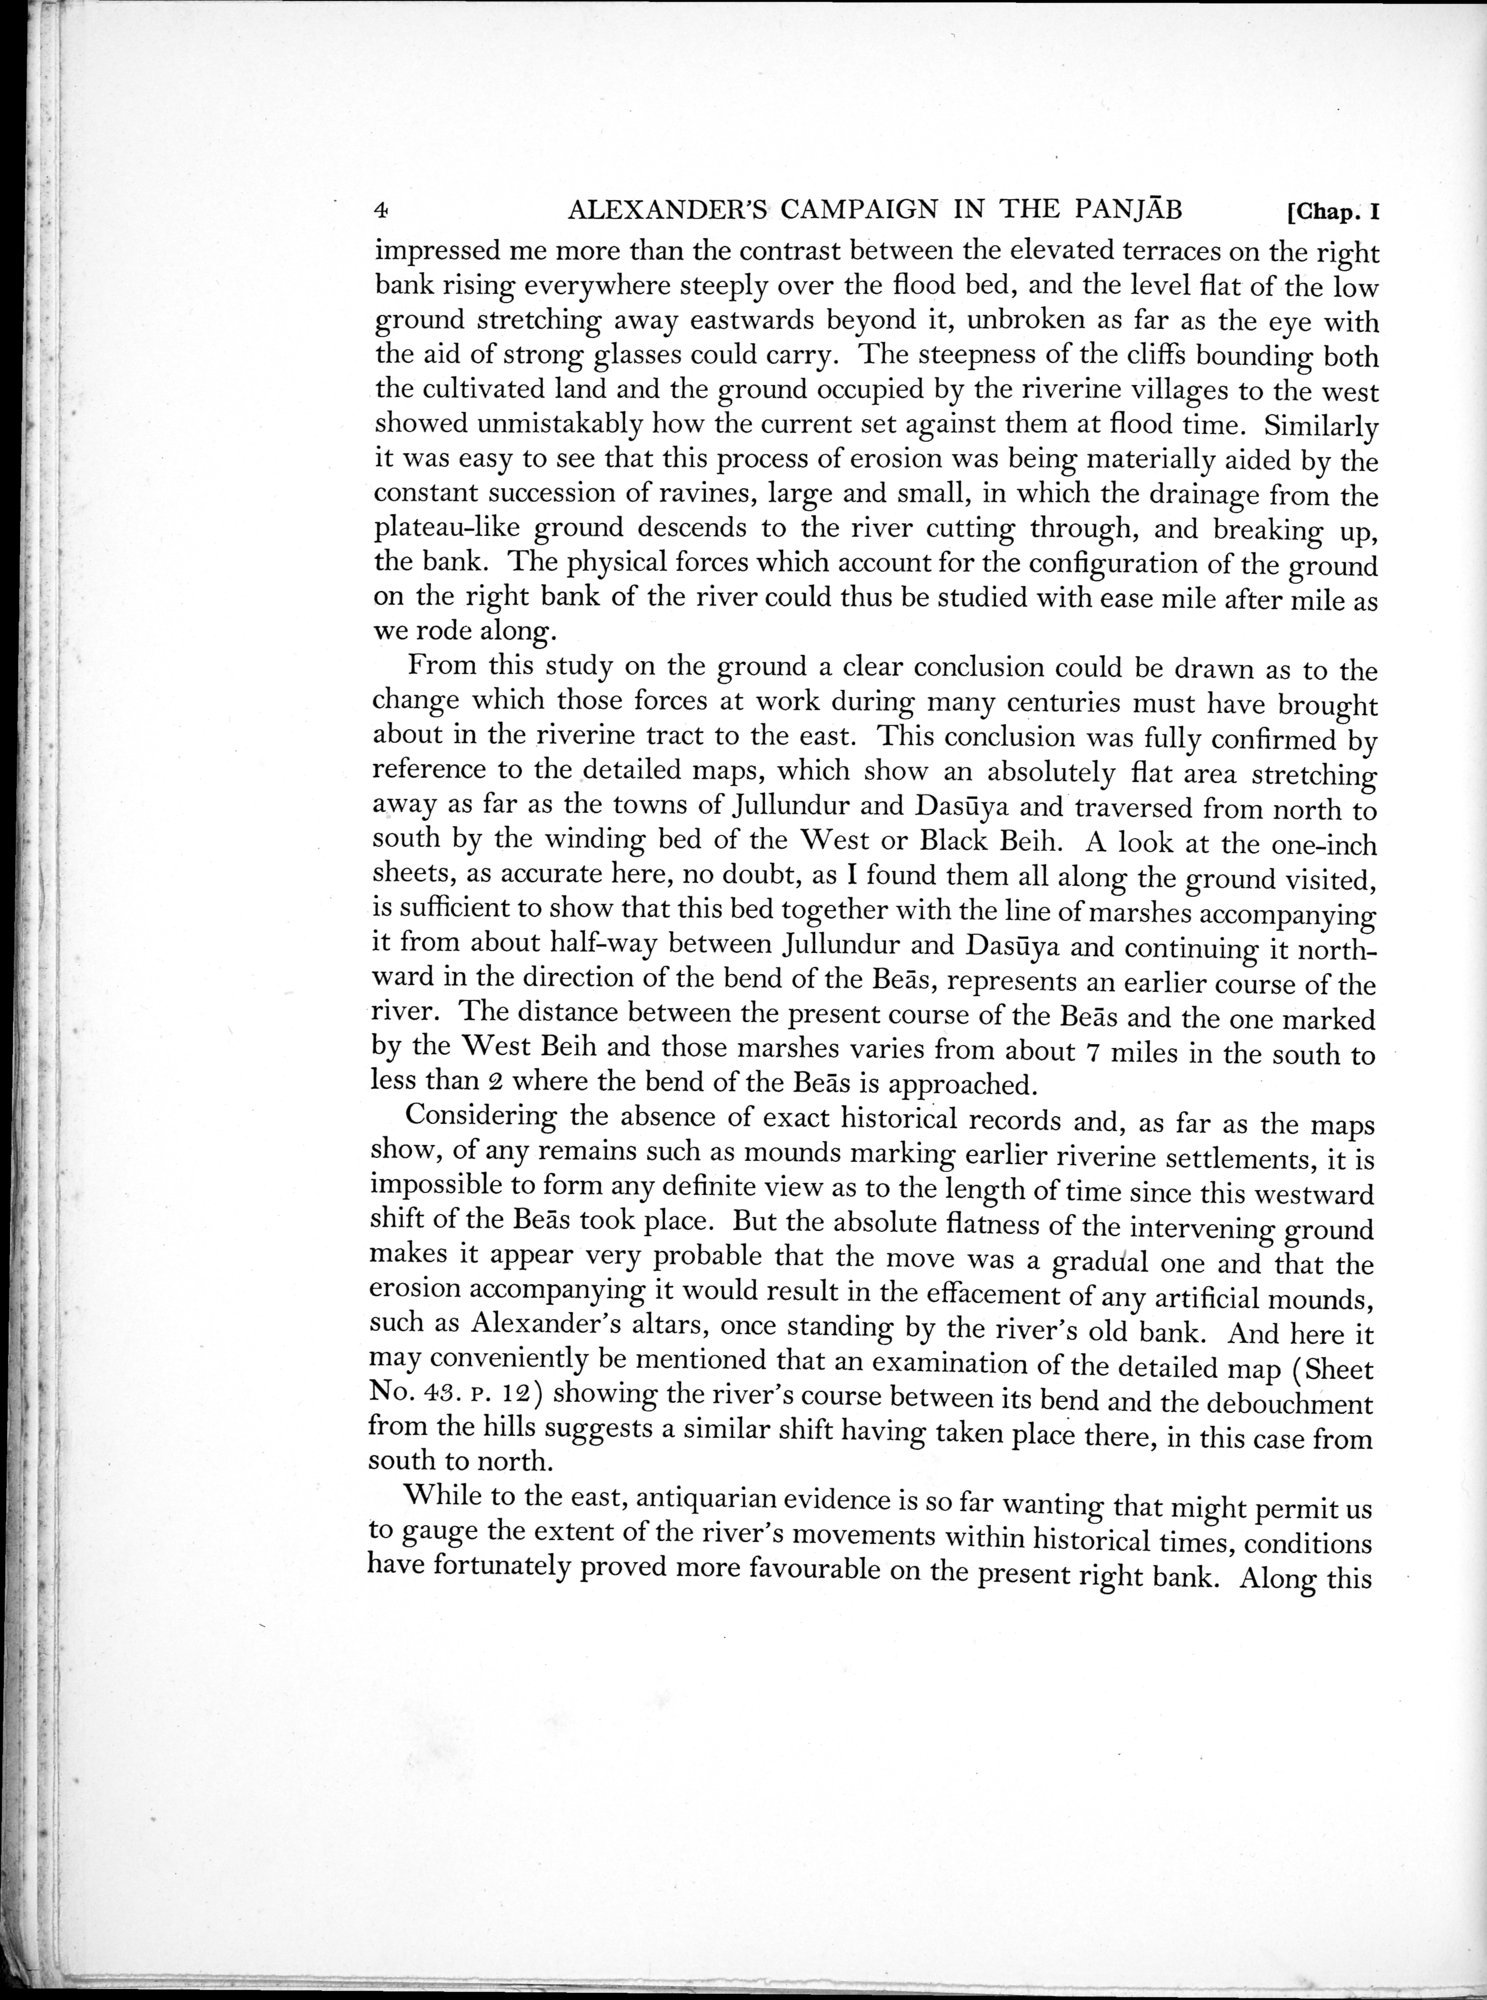 Archaeological Reconnaissances in North-Western India and South-Eastern Īrān : vol.1 / Page 28 (Grayscale High Resolution Image)